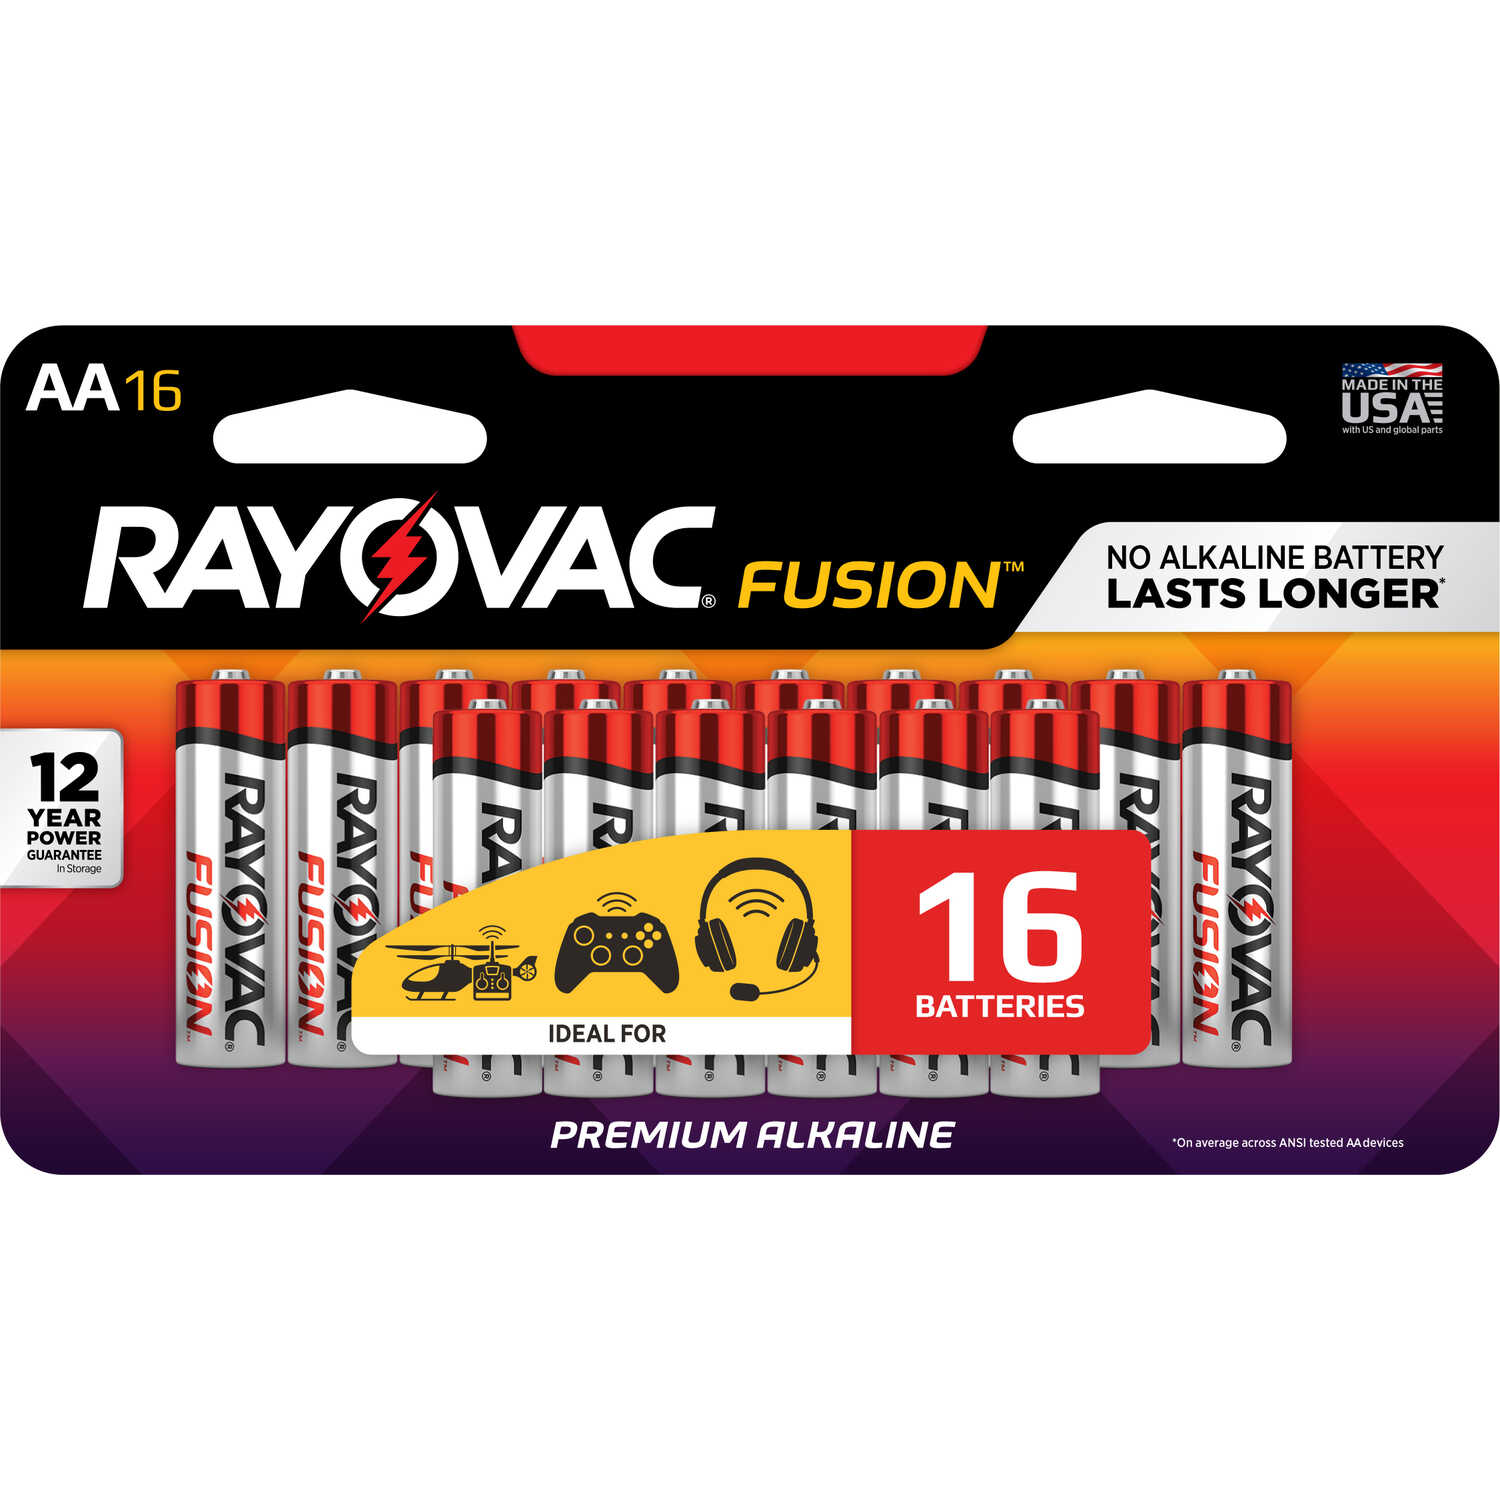 Rayovac  Fusion  AA  Alkaline  Batteries  1.5 volt 16 pk Carded